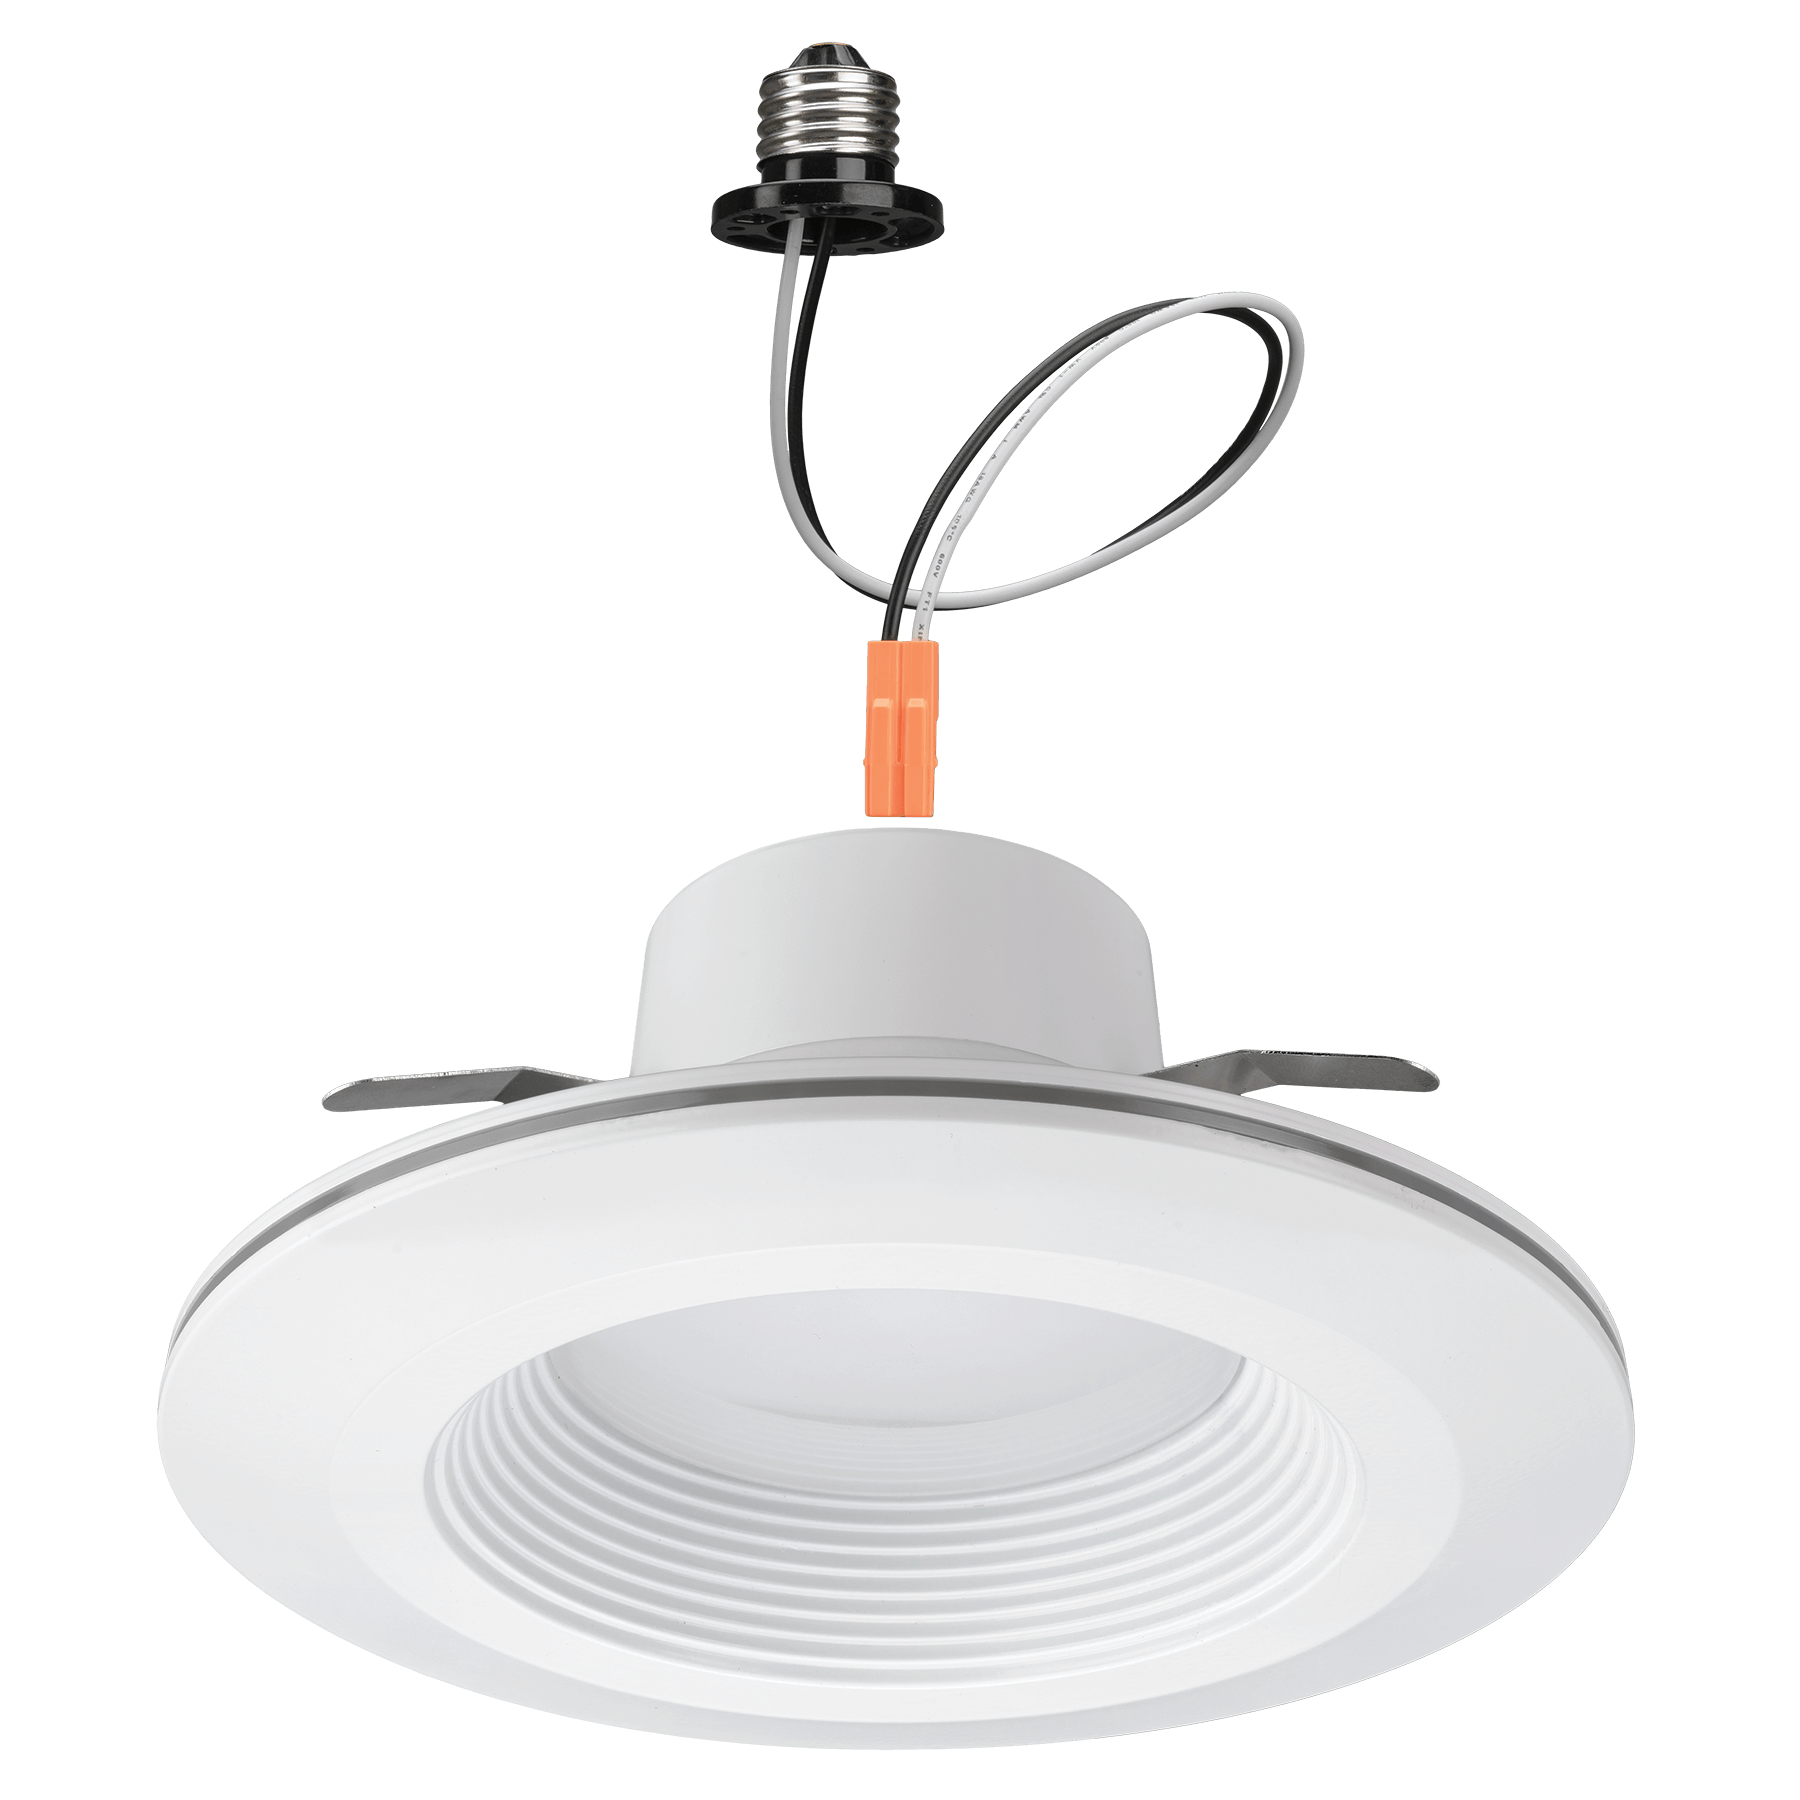 53804102 – 6″ COLOR PREFERENCE® DOWNLIGHT WITH NIGHTLIGHT TRIM